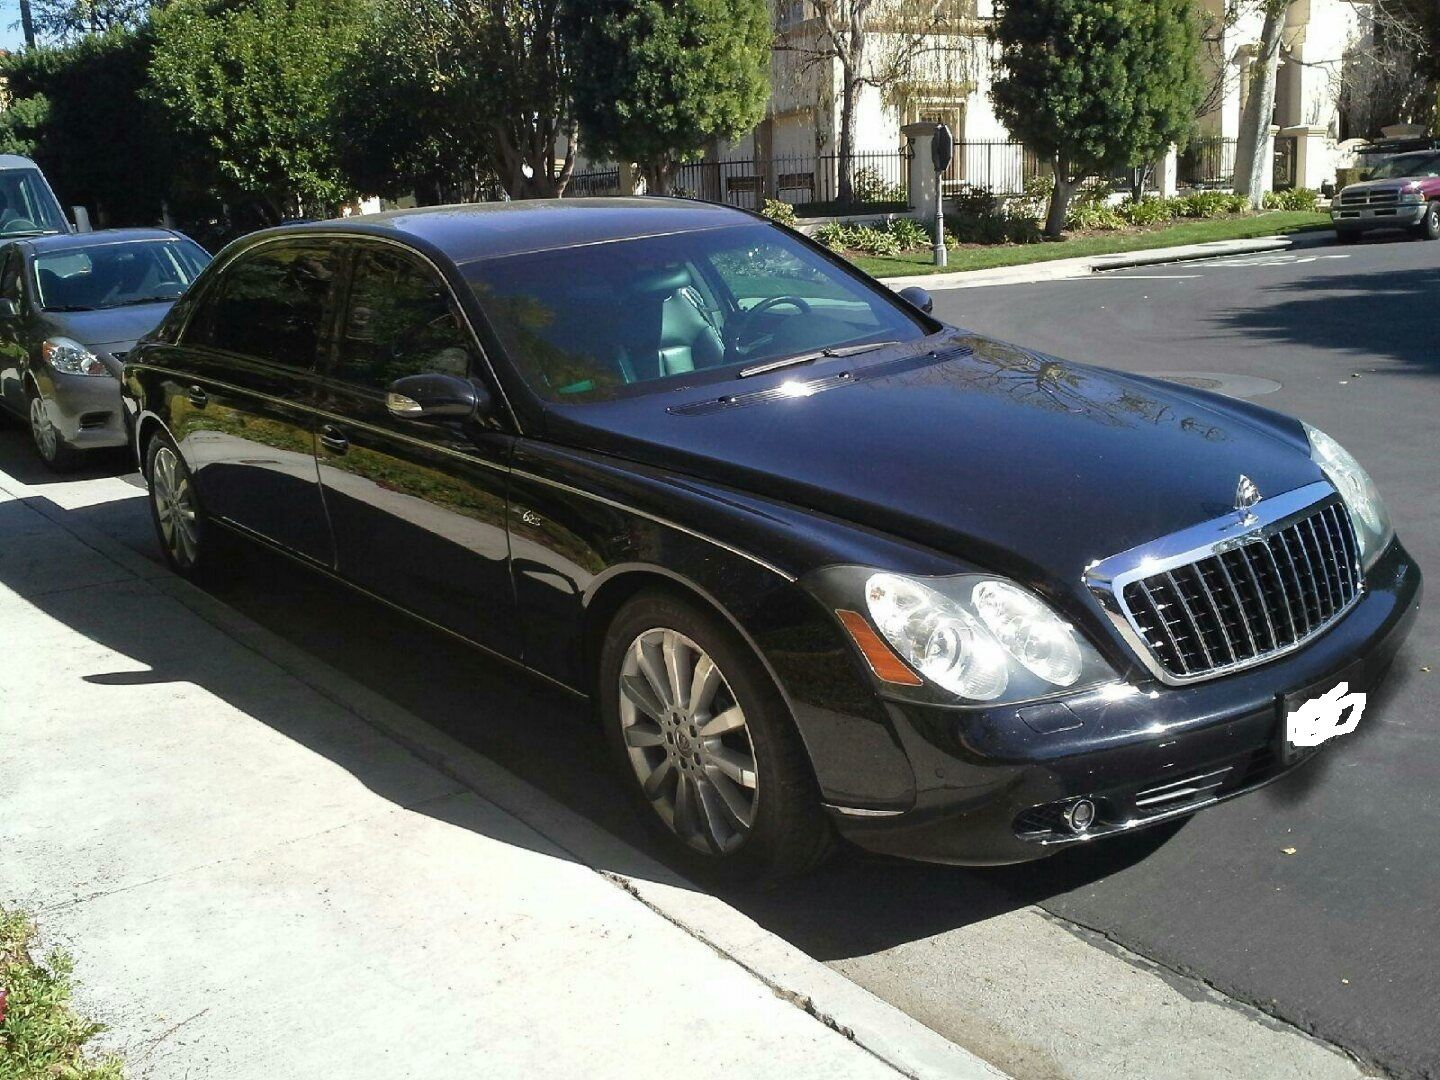 Charlie Sheens Armored Maybach 62S For Sale On eBay